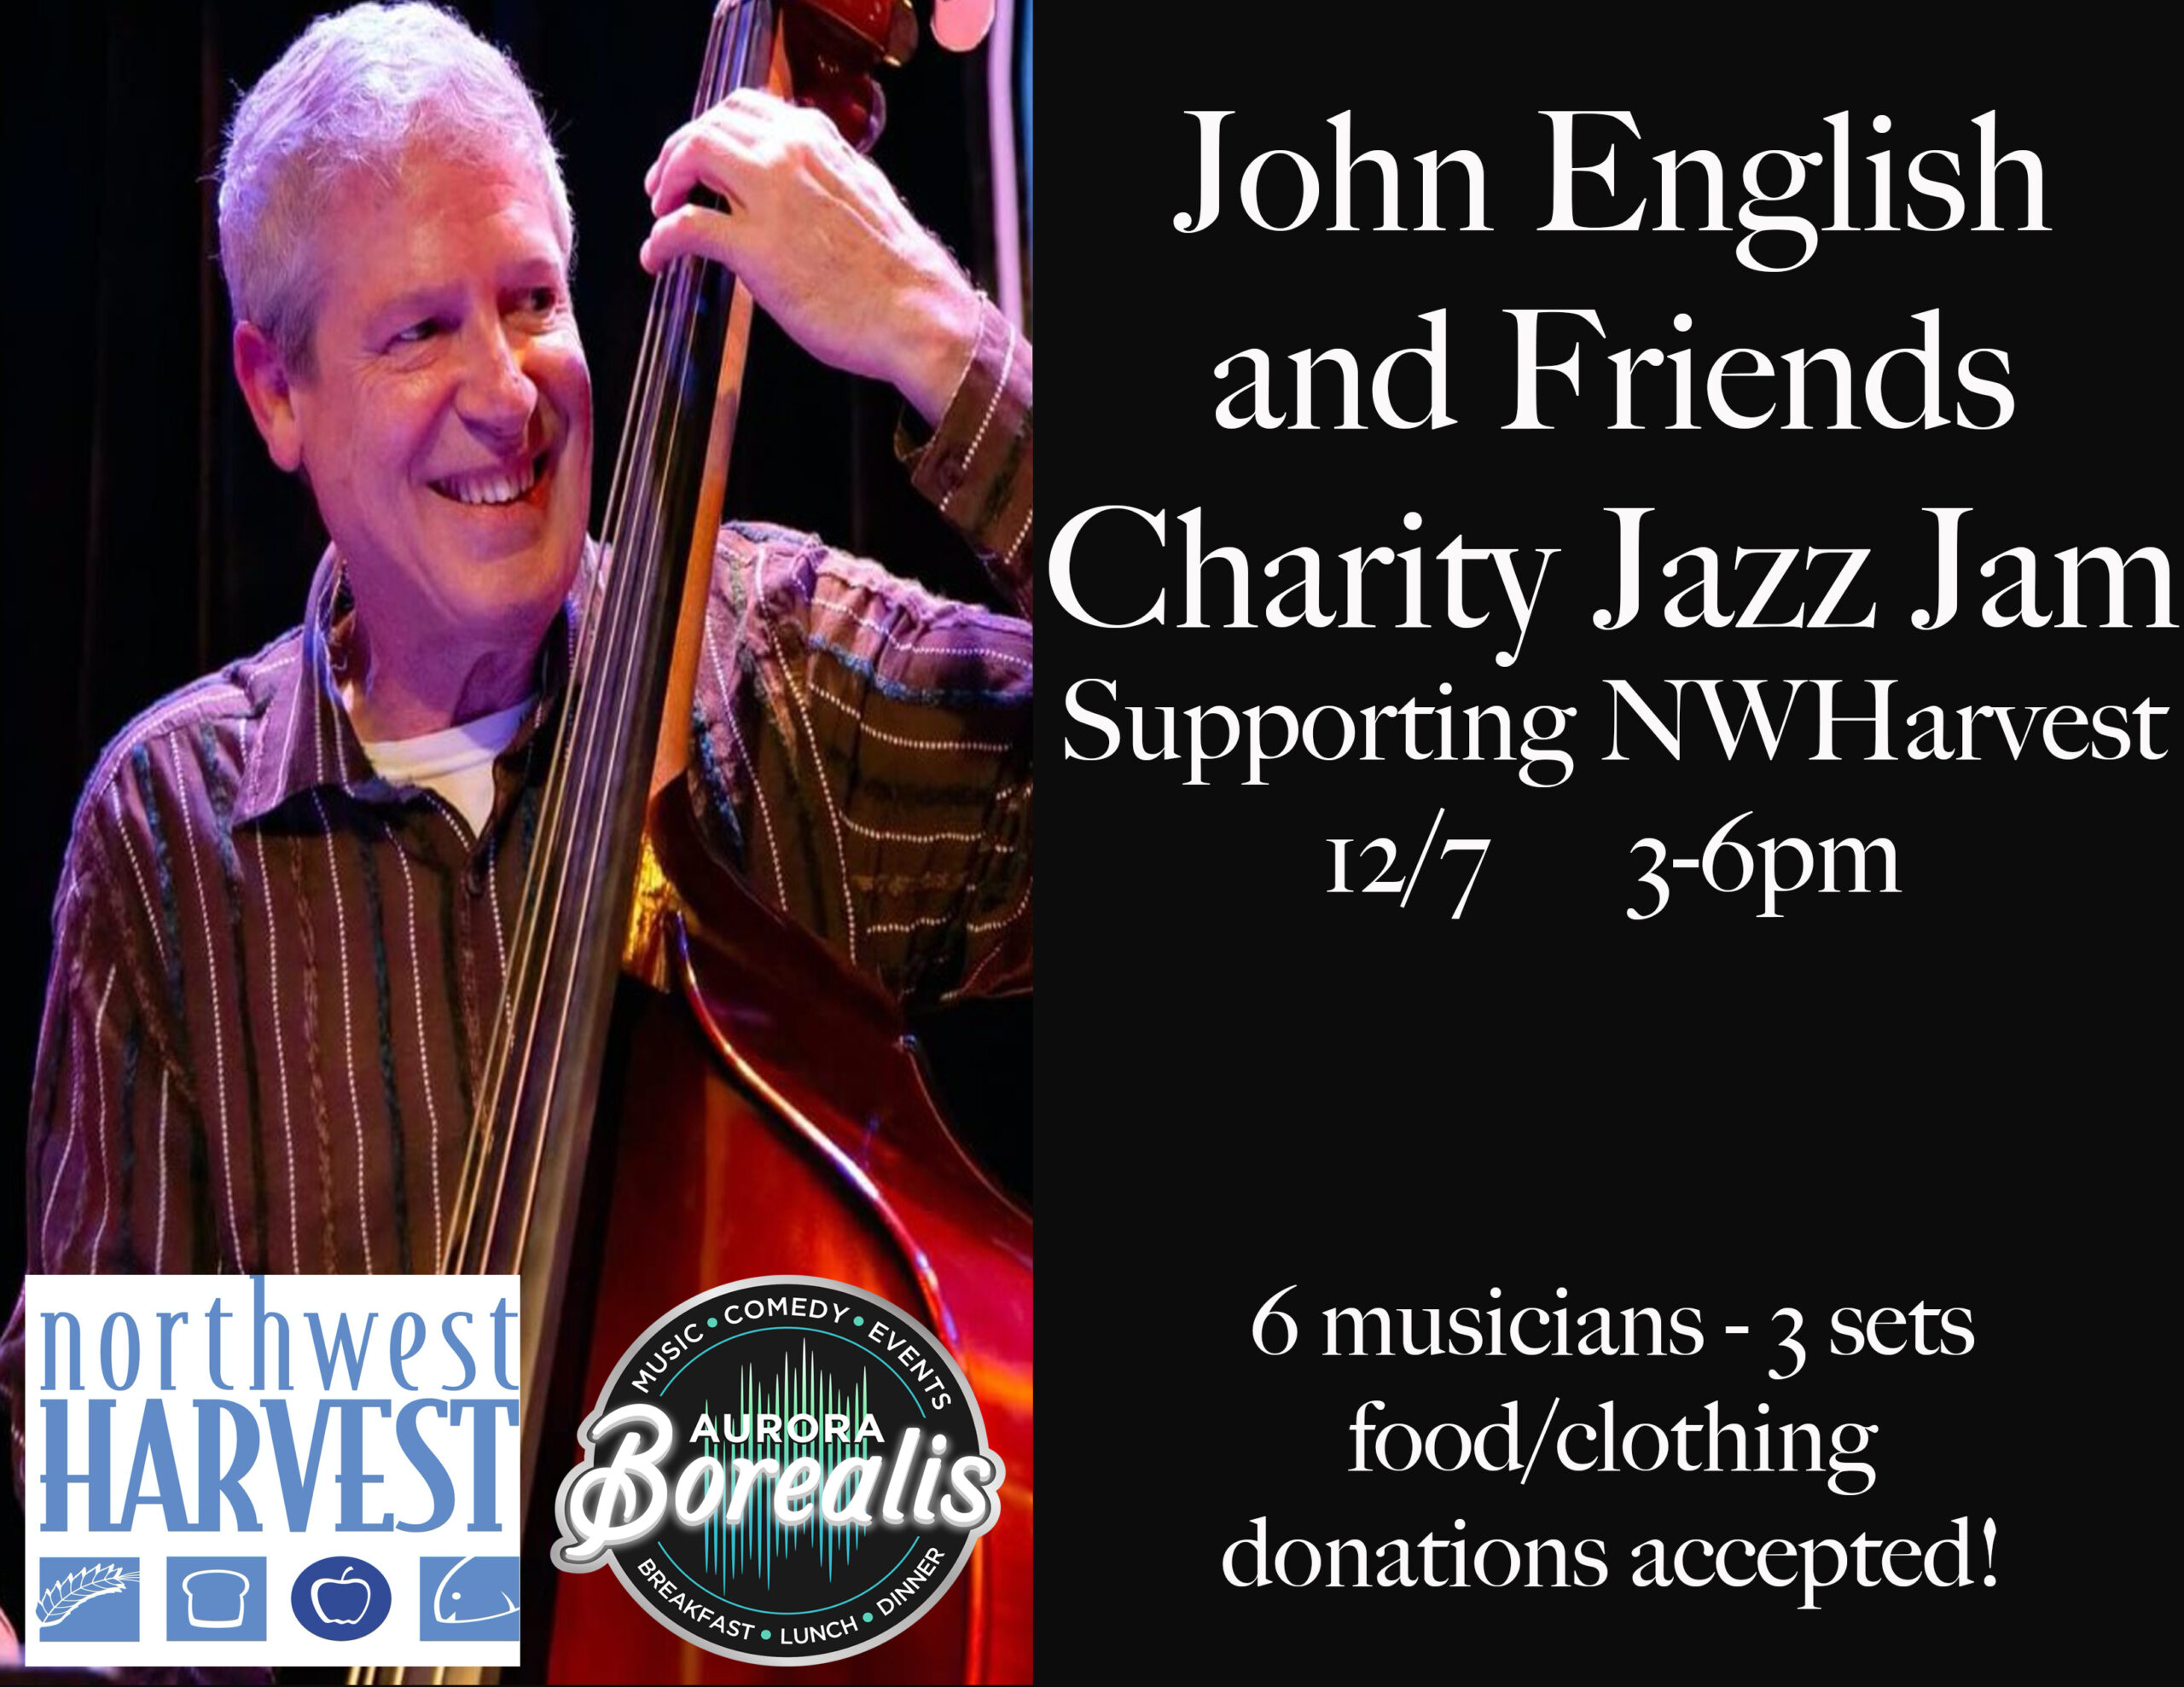 John English Charity Jazz Jam for NWHarvest